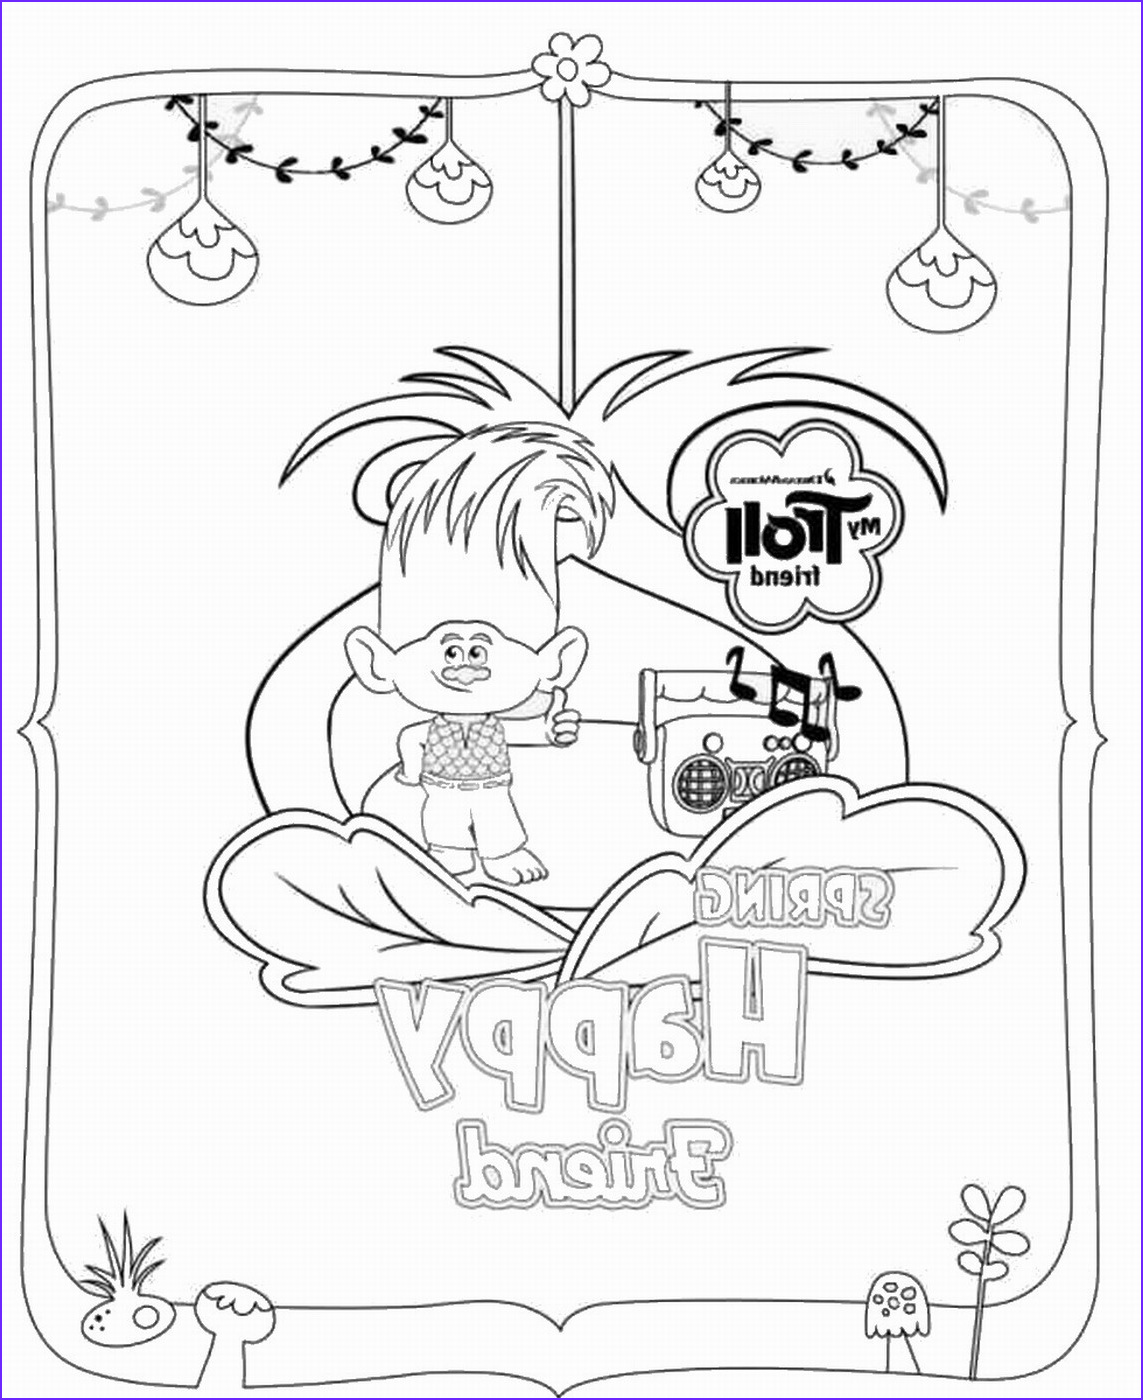 Movie Coloring Pages Best Of Image Trolls Holiday Movie Coloring Pages